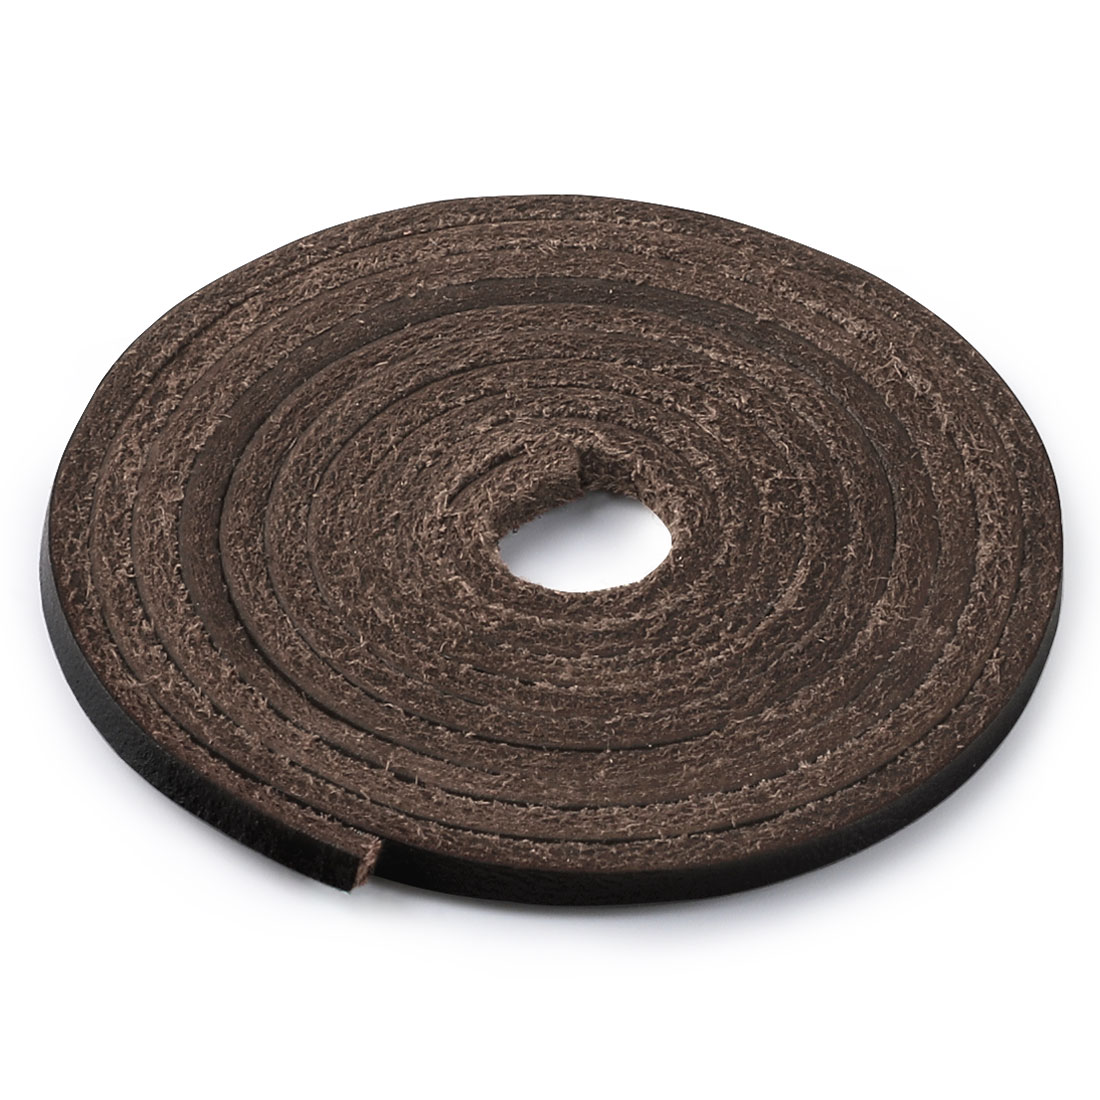 """Leather Boot Shoelaces for Boat Shoes Shoe Laces Coffee 80cm / 31.49"""""""